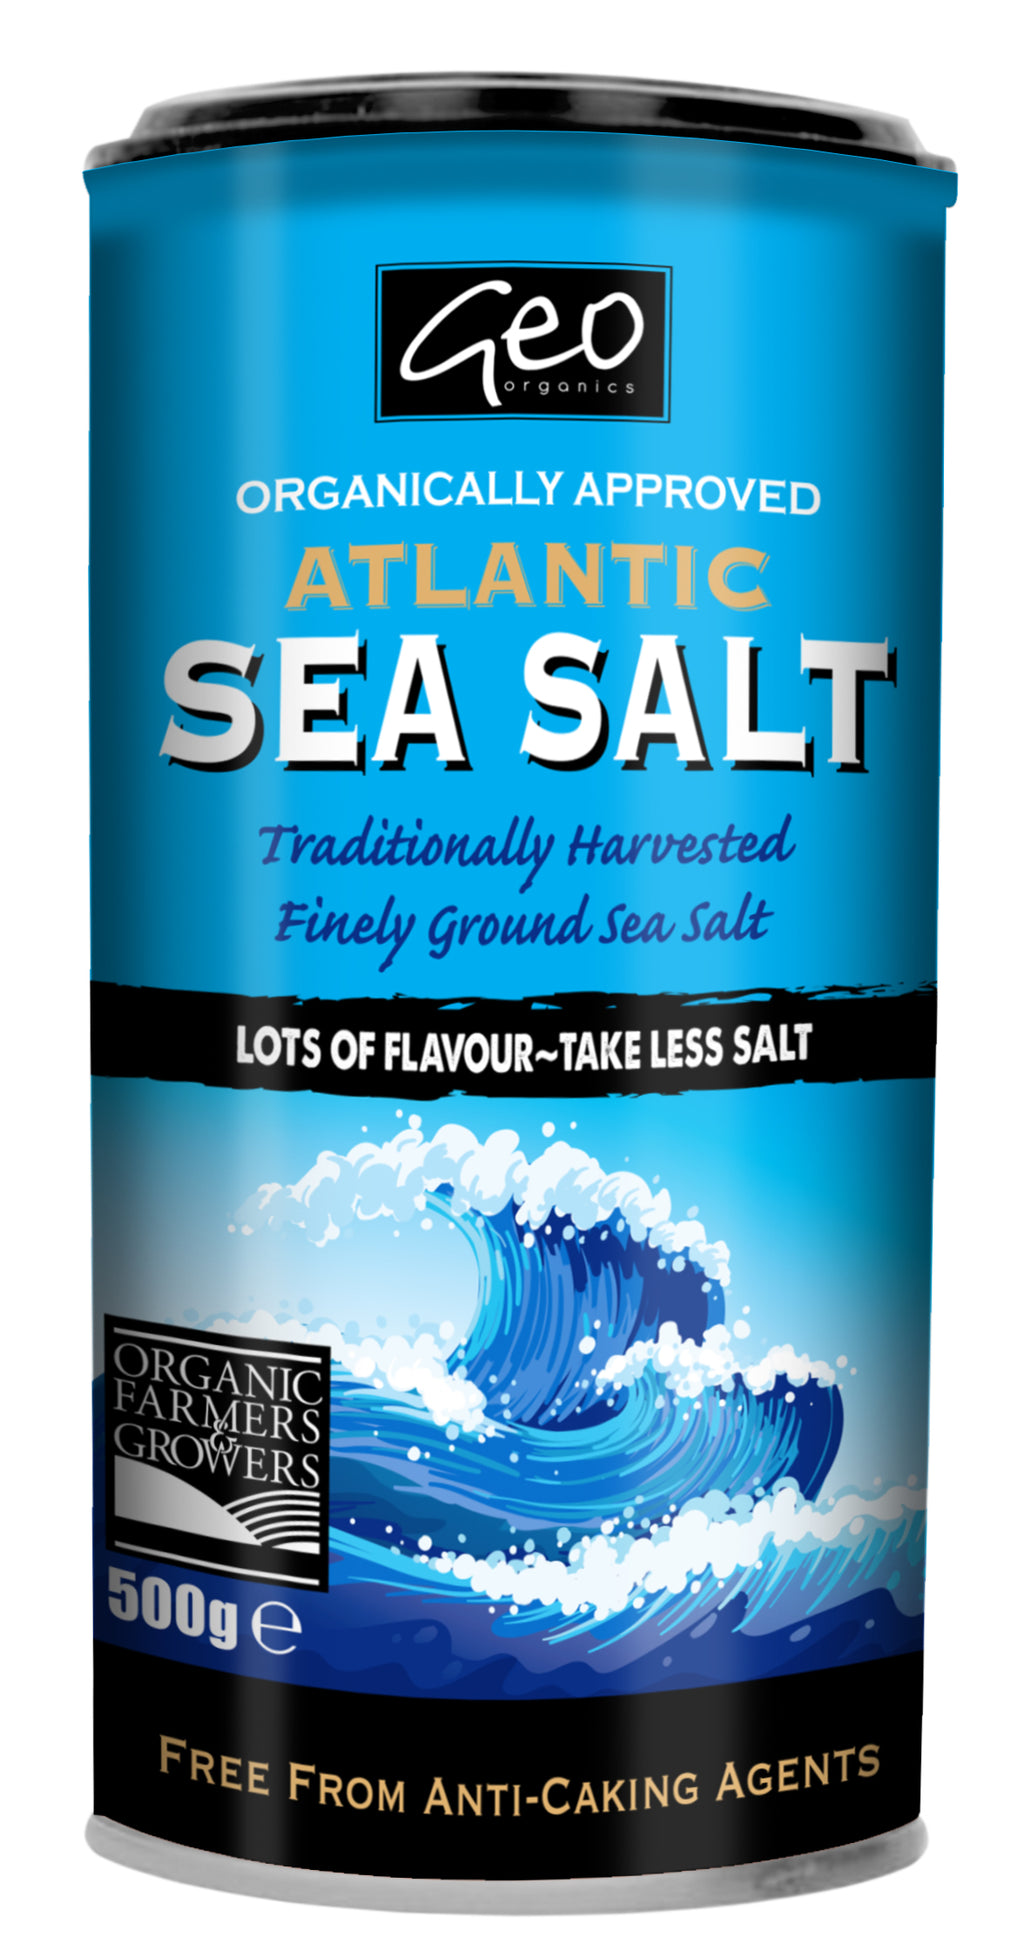 Organically Approved Atlantic Sea Salt Shaker - 500g - Shipping From Just £2.99 Or FREE When You Spend £55 Or More